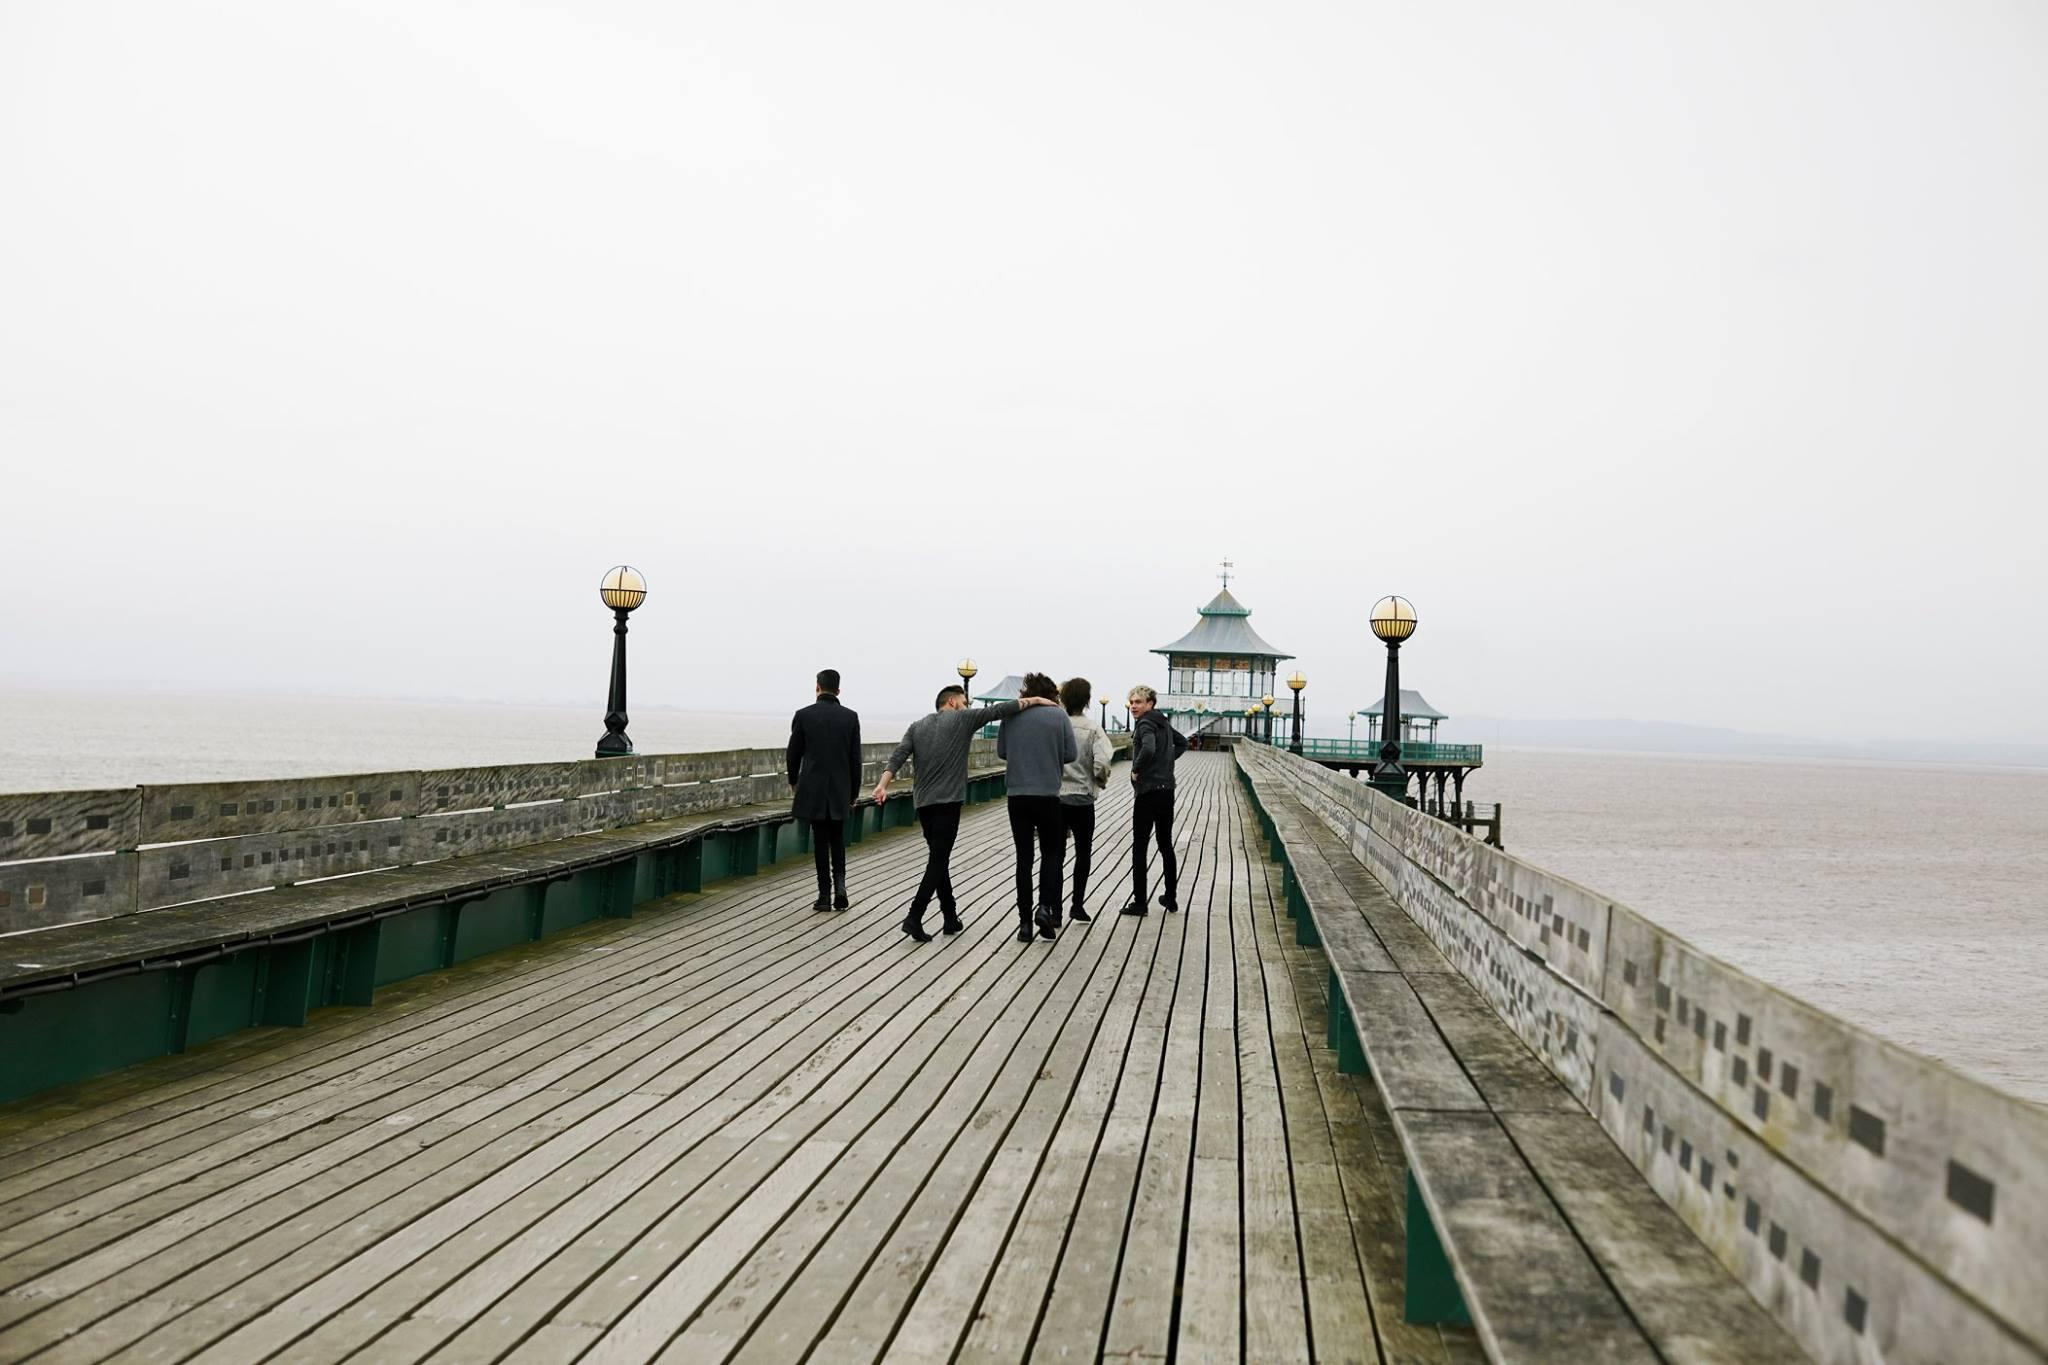 It's Friday, it's Easter weekend and @onedirection's #YouAndIVideo is out today. Good things come in threes it seems! http://t.co/fOVBNOK02E